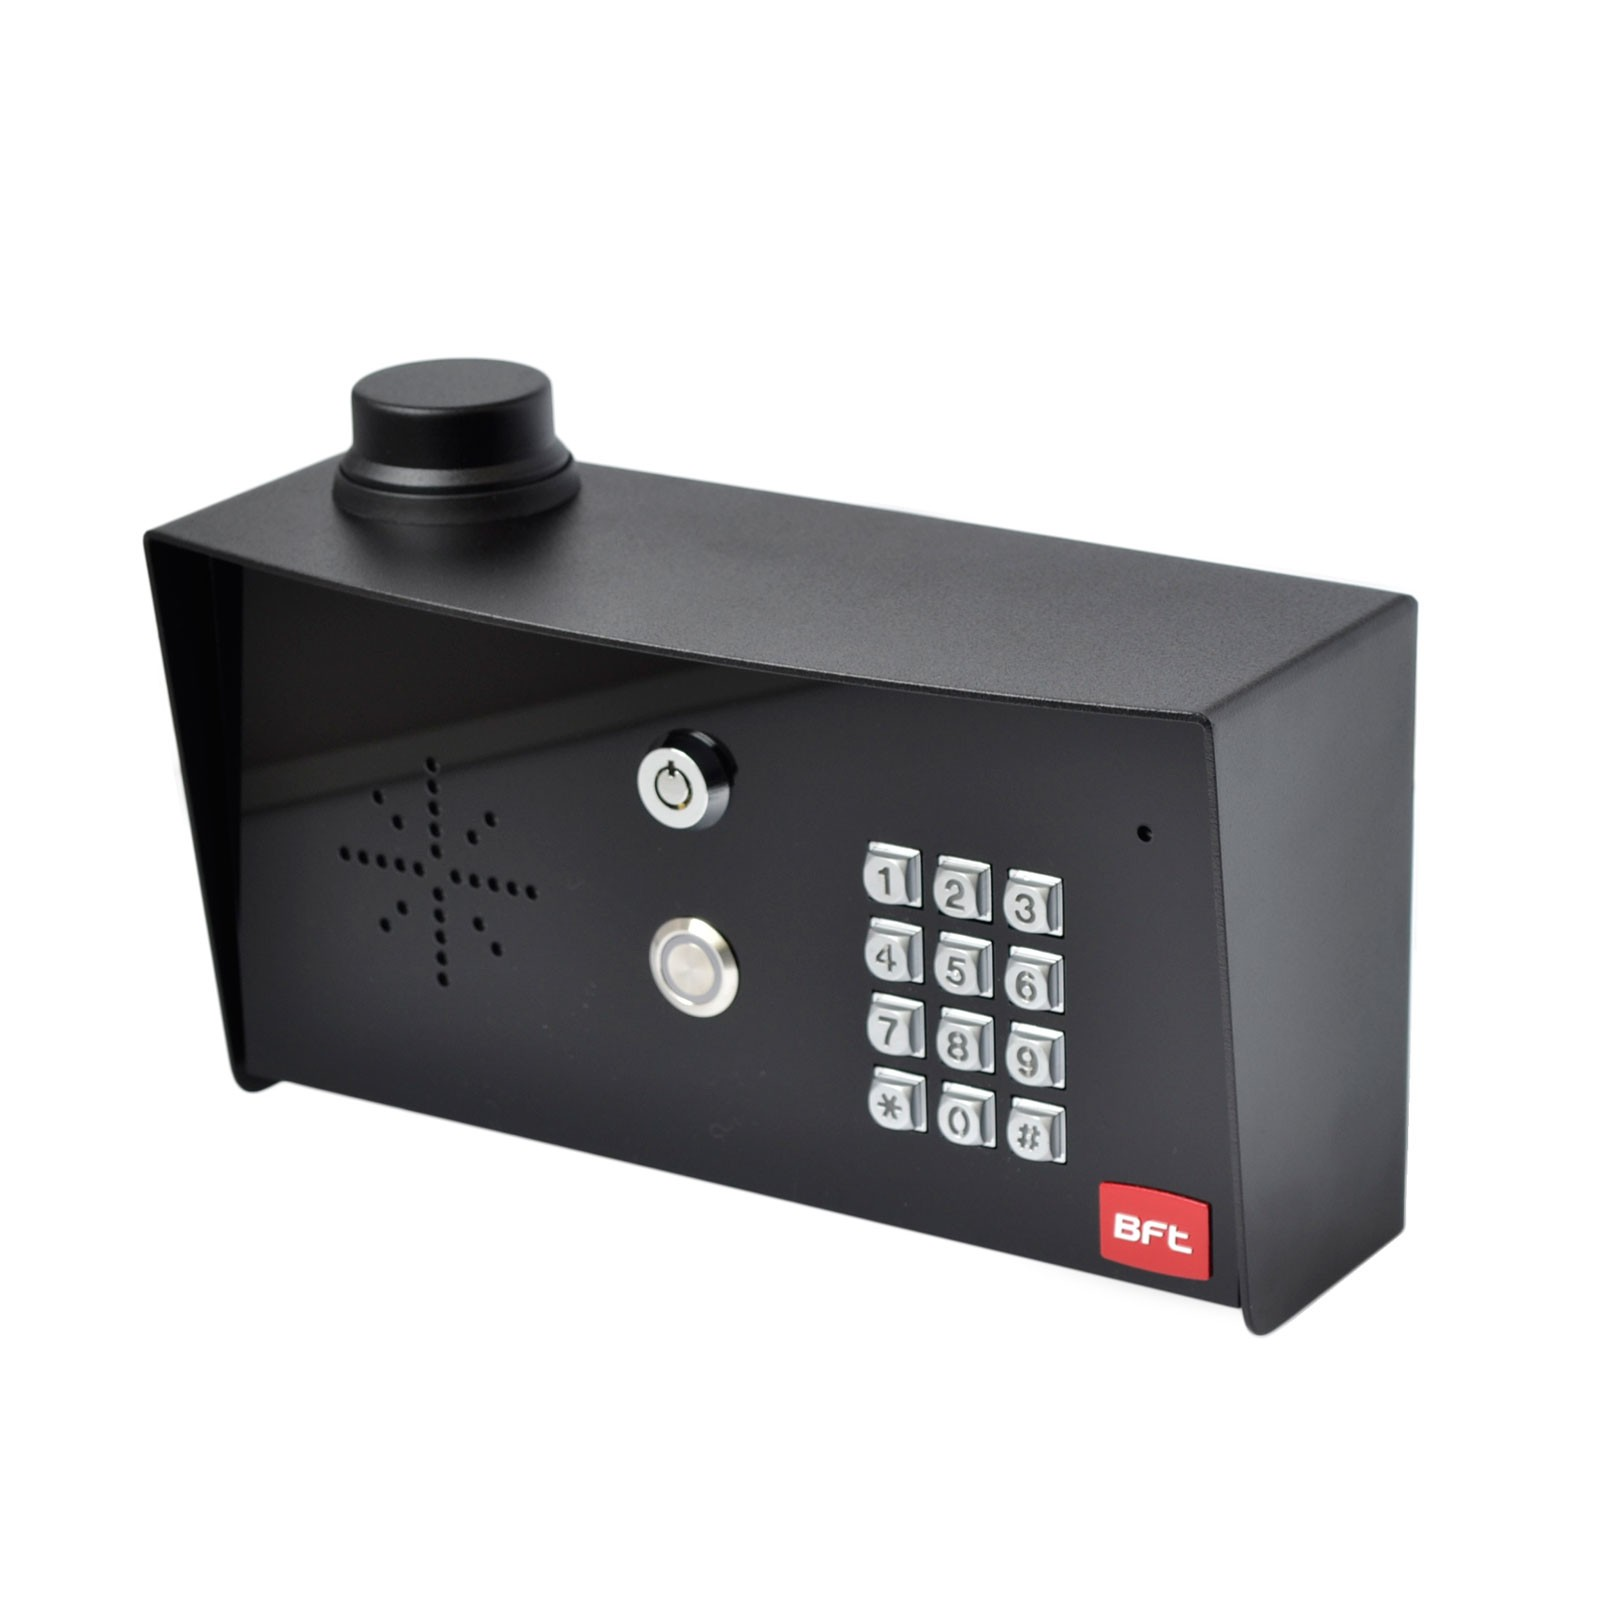 Bft Cell Box Bft Telephone Entry System Works With Sim